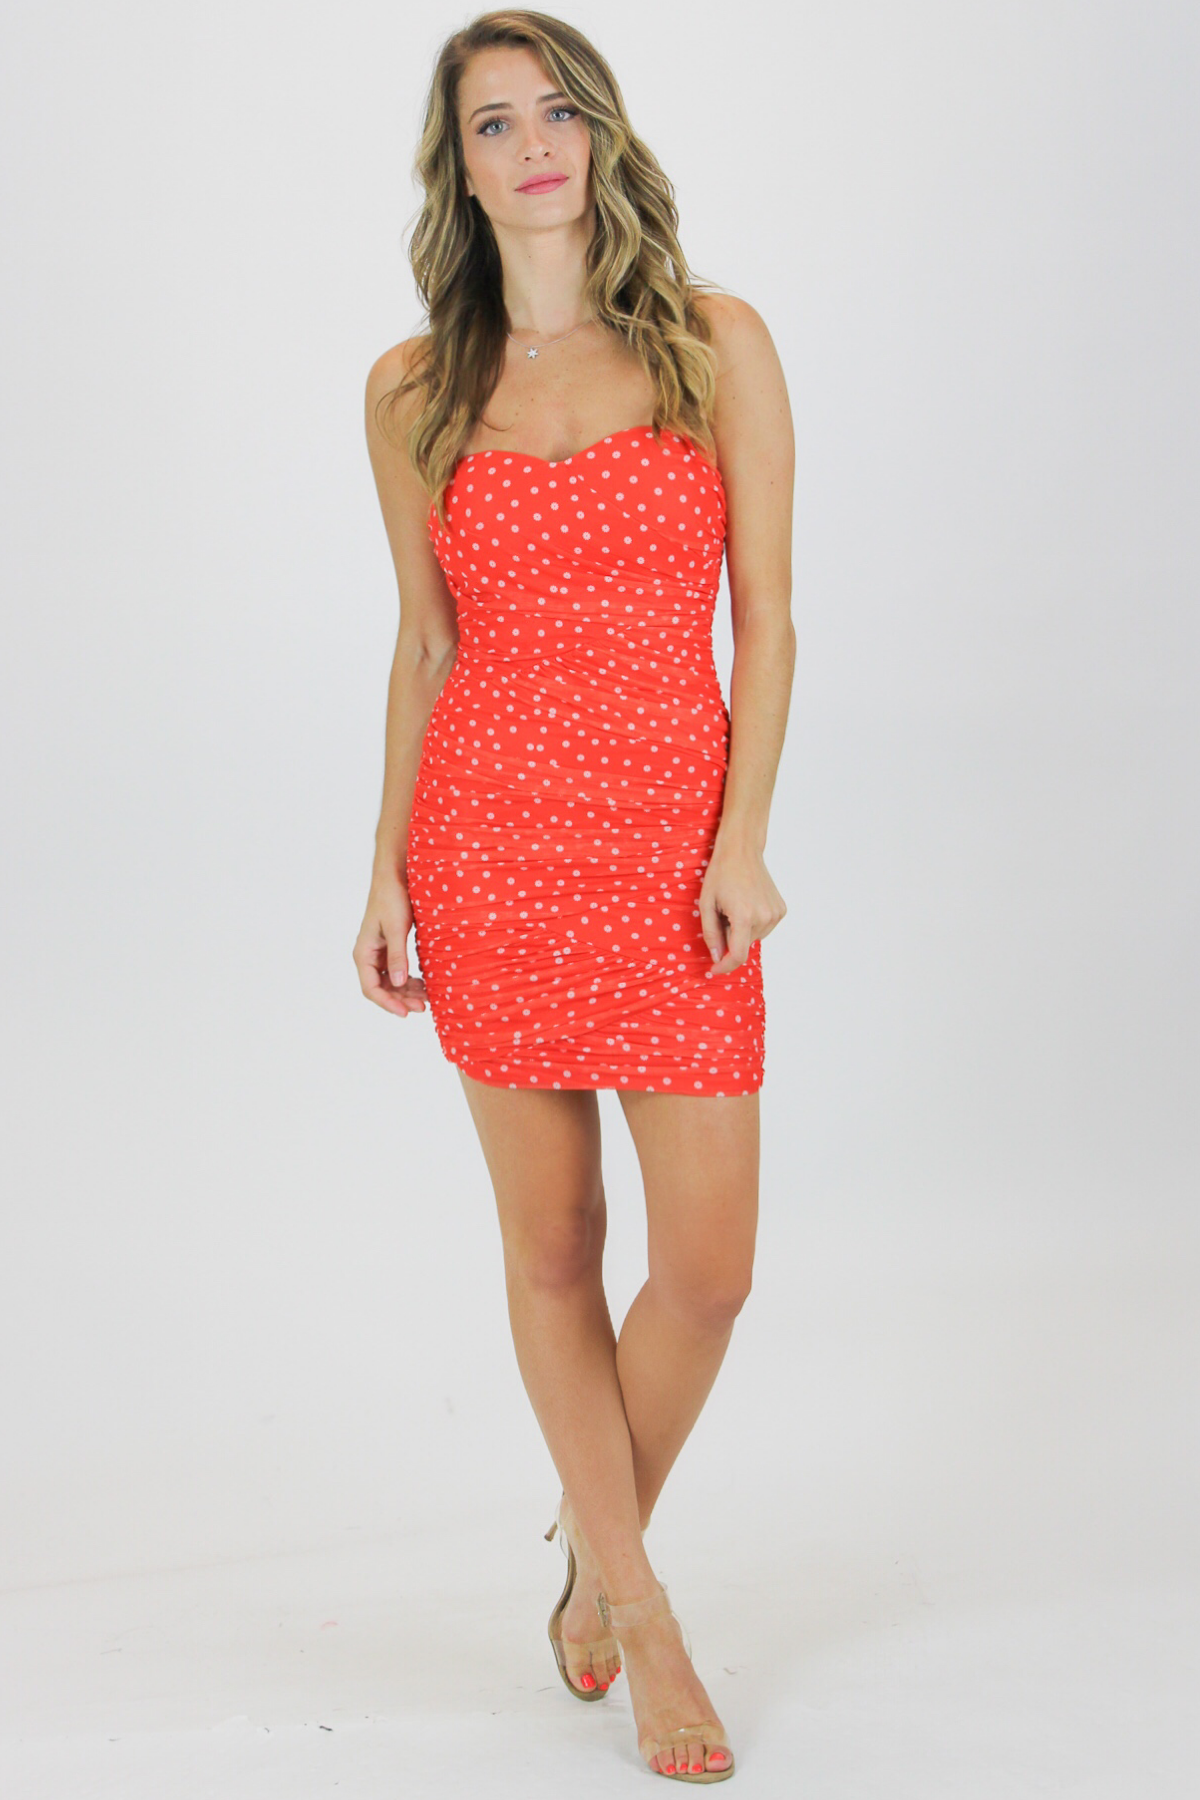 MESH POLKA DOT RUCHED MINI / FINAL CLEARANCE